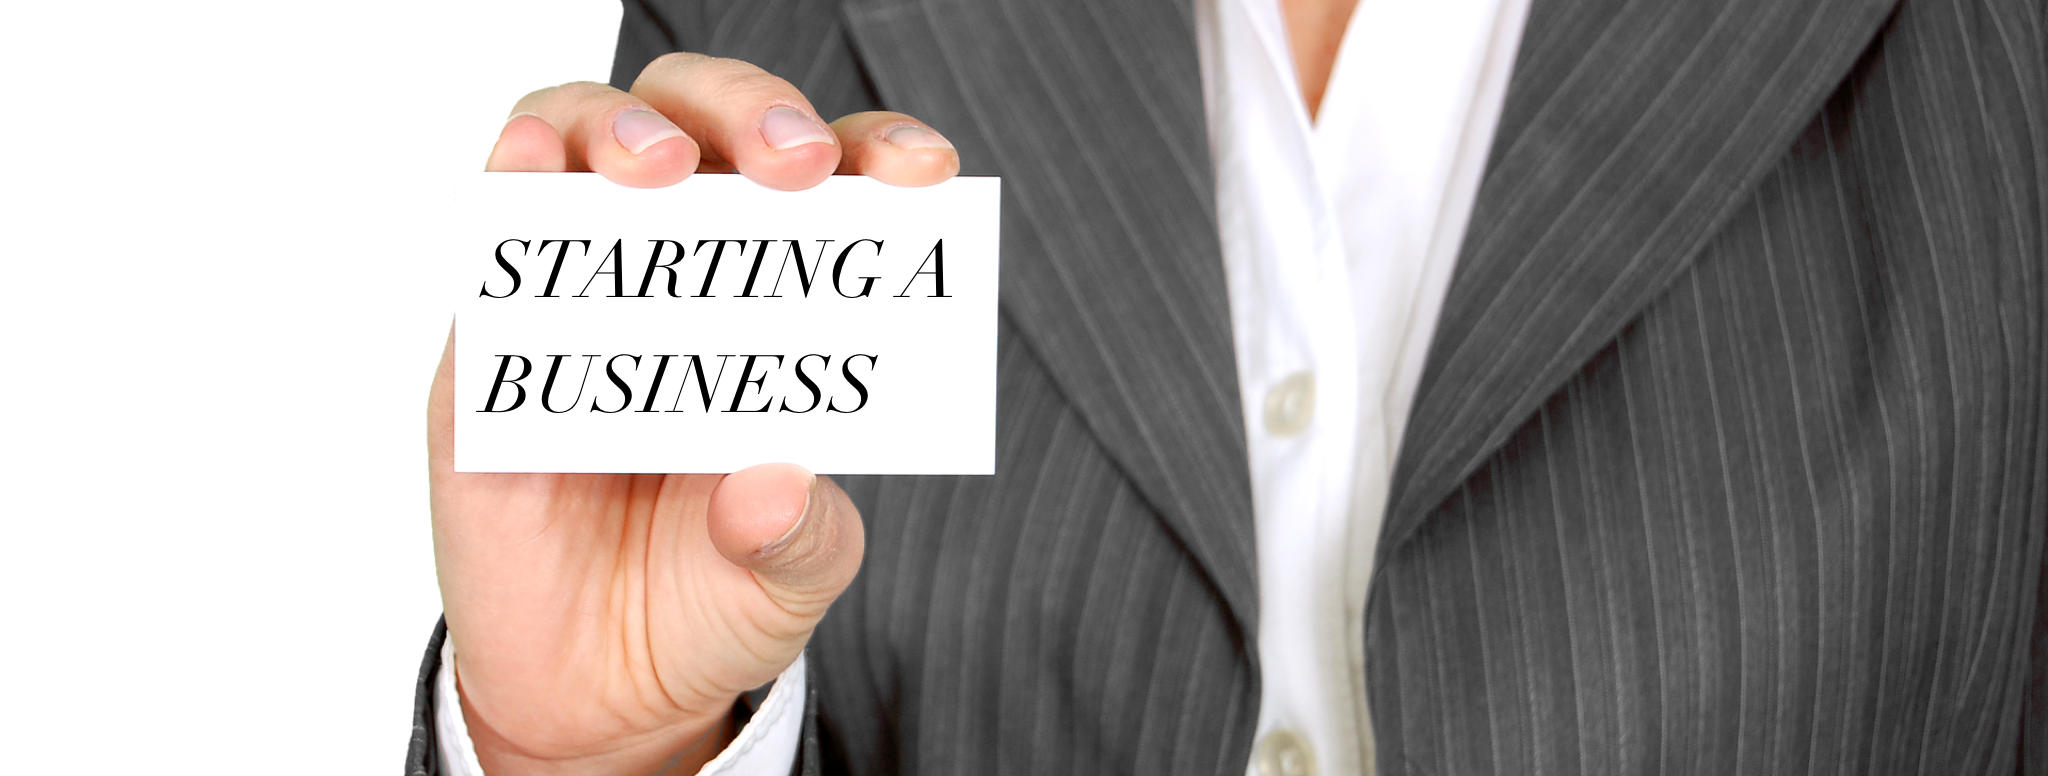 CVW Accounting - blog - Starting a Business